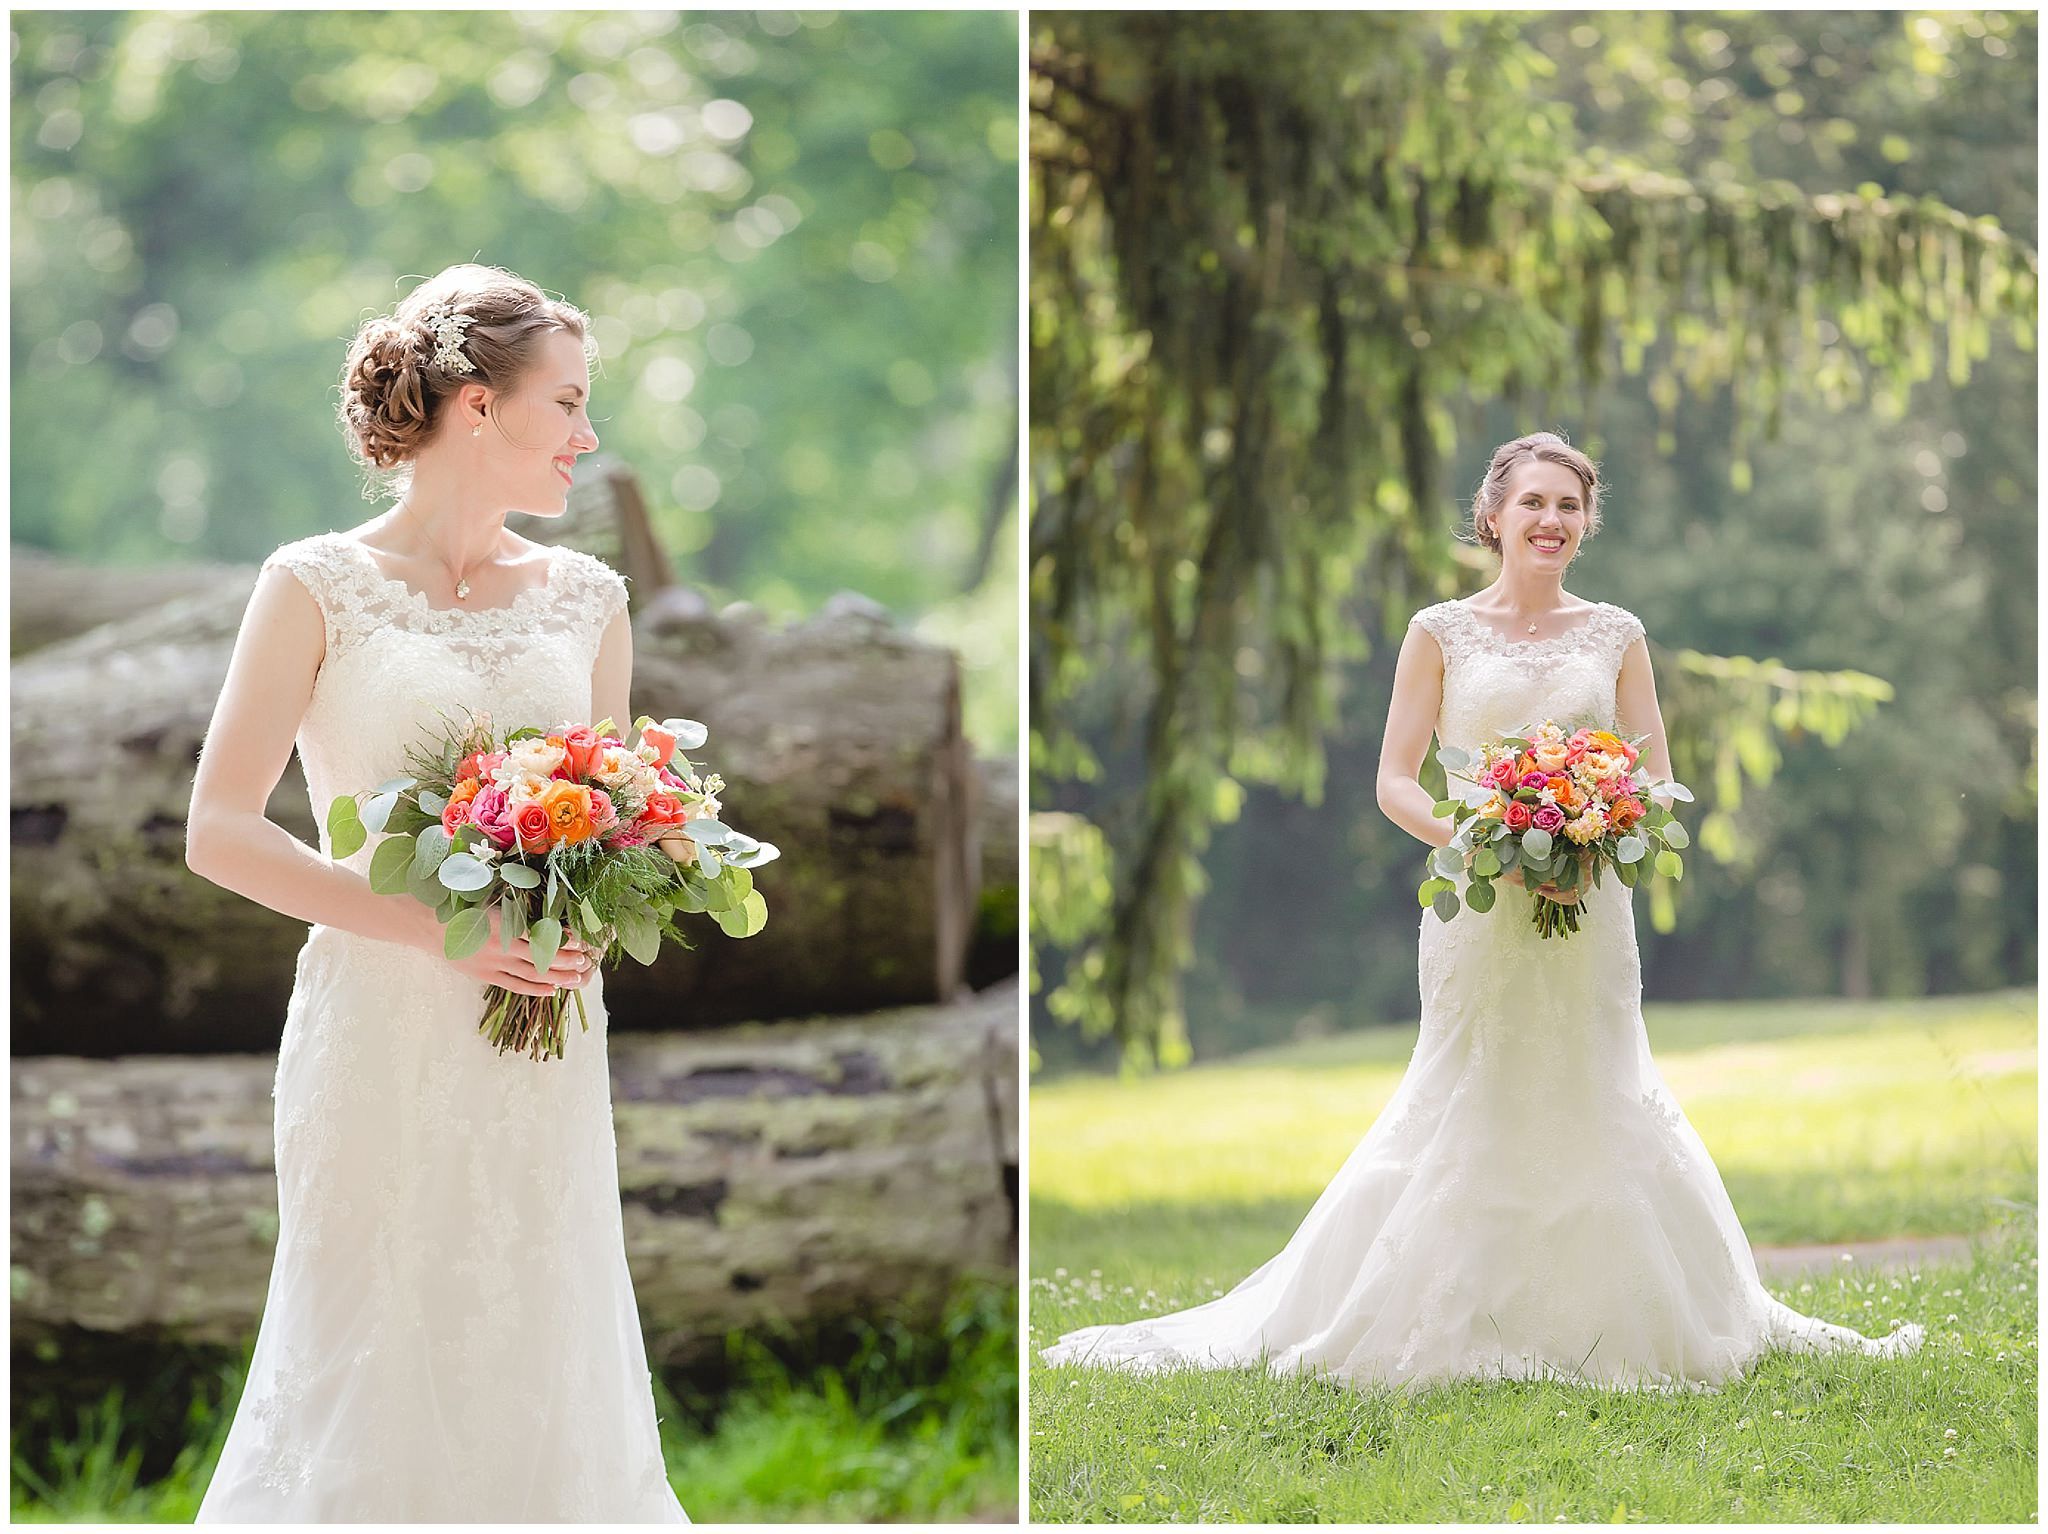 Bridal portraits at Shannopin Country Club with bouquet from McCandless Floral